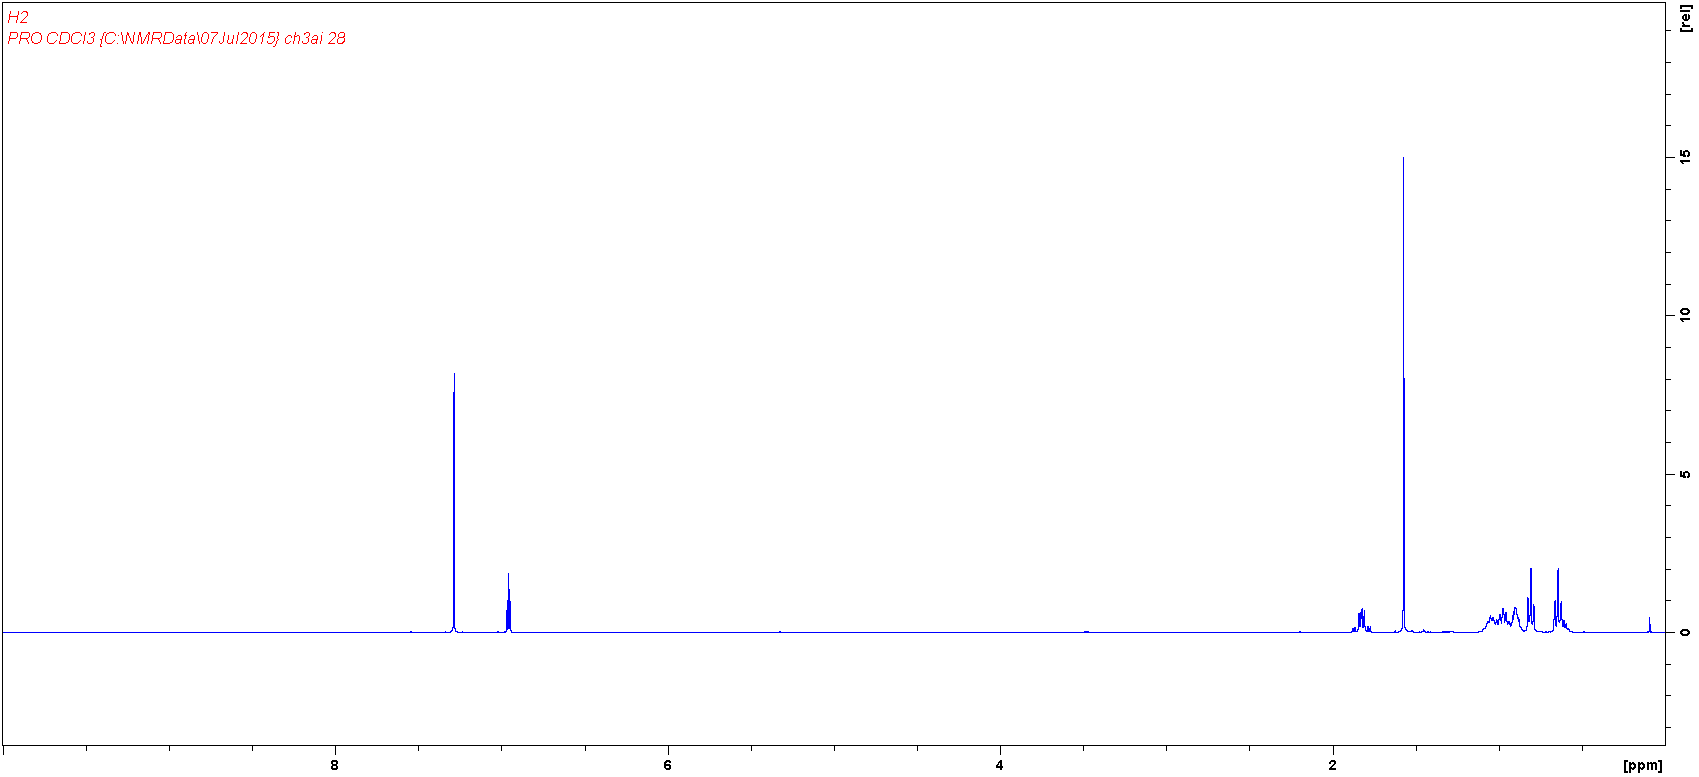 1 H NMR spectrum of 2,6-dibromo-4,4-bis(2-ethylhexyl)-4H-cyclopenta[1,2-b:5,4-b']dithiophene in CDCl3